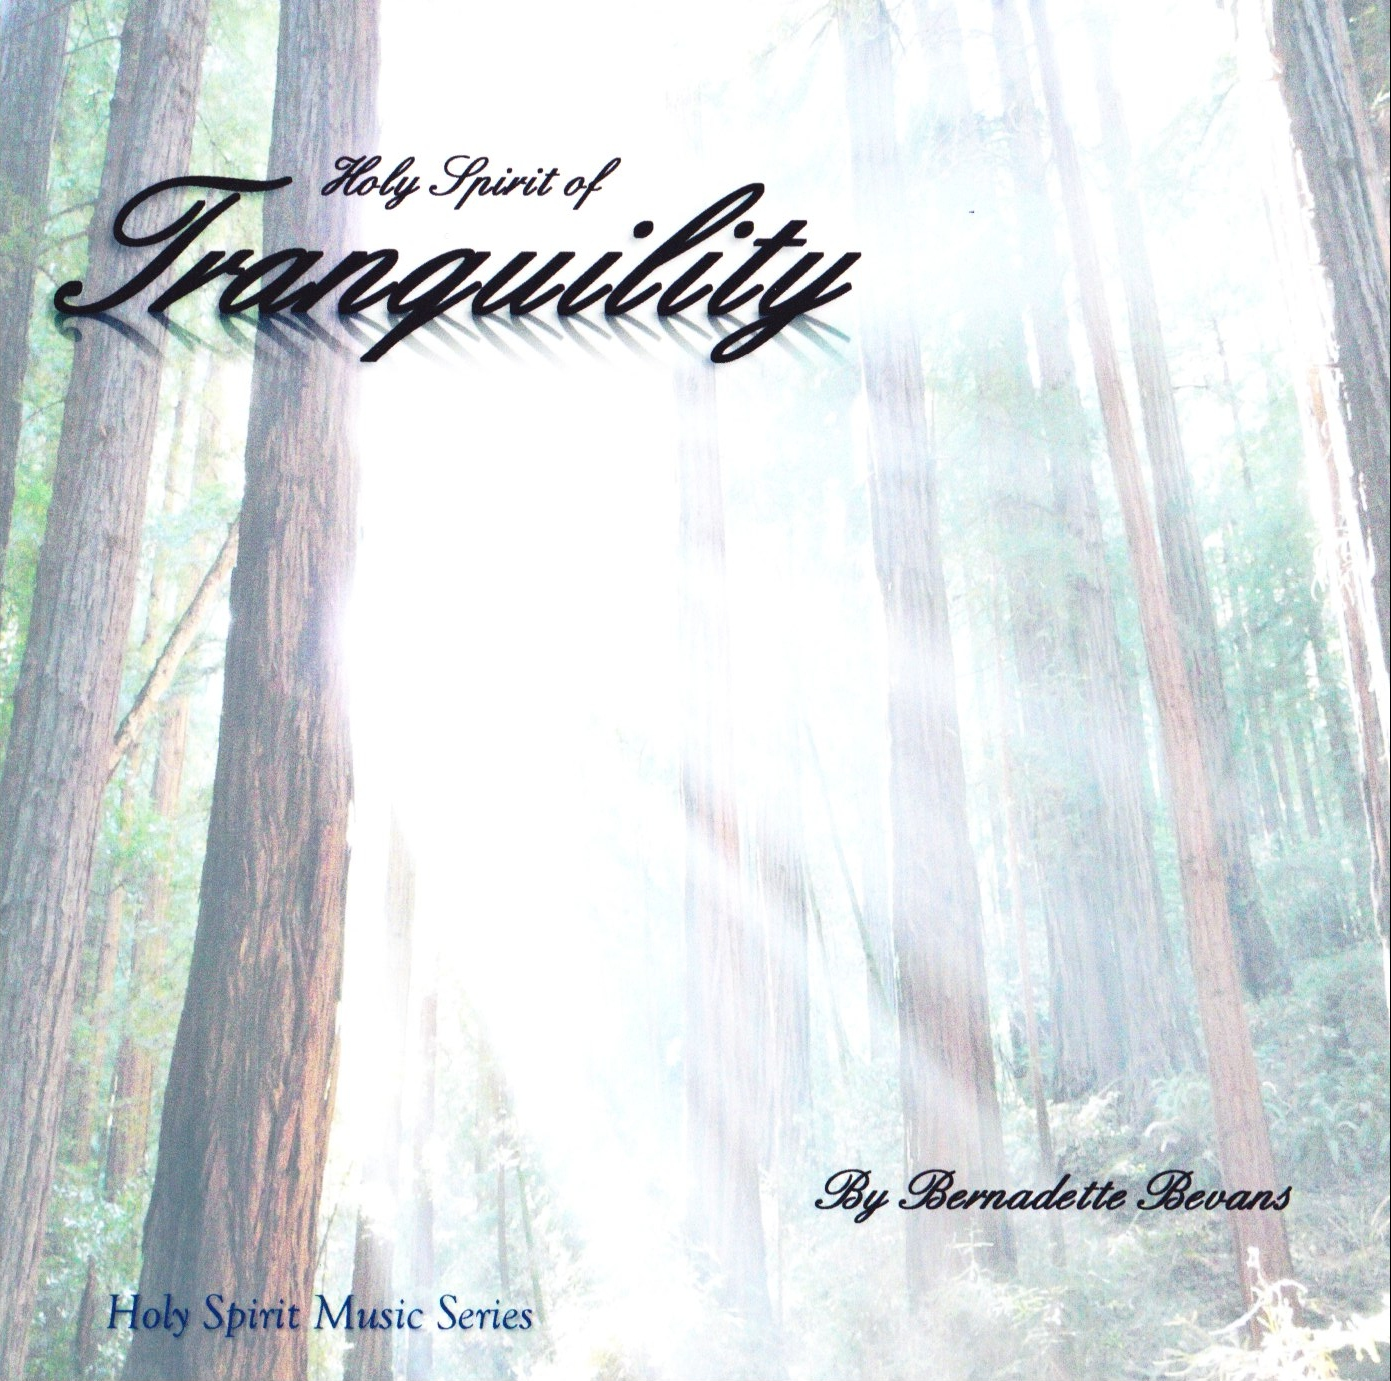 Holy Spirit of Tranquility CD